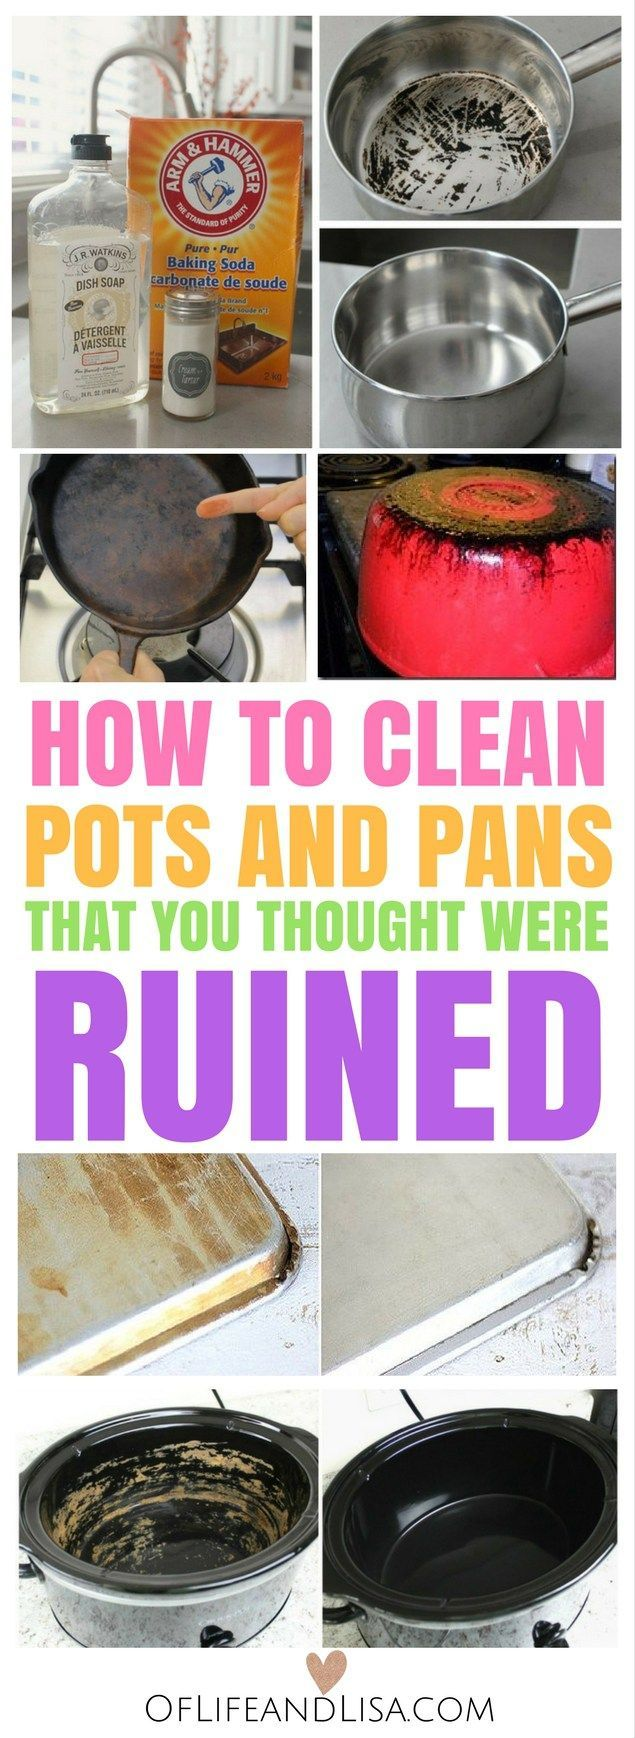 25 unique clean rust ideas on pinterest how to clean rust cleaning rusty tools and rust removal - Clean burnt grease oven pots pans ...